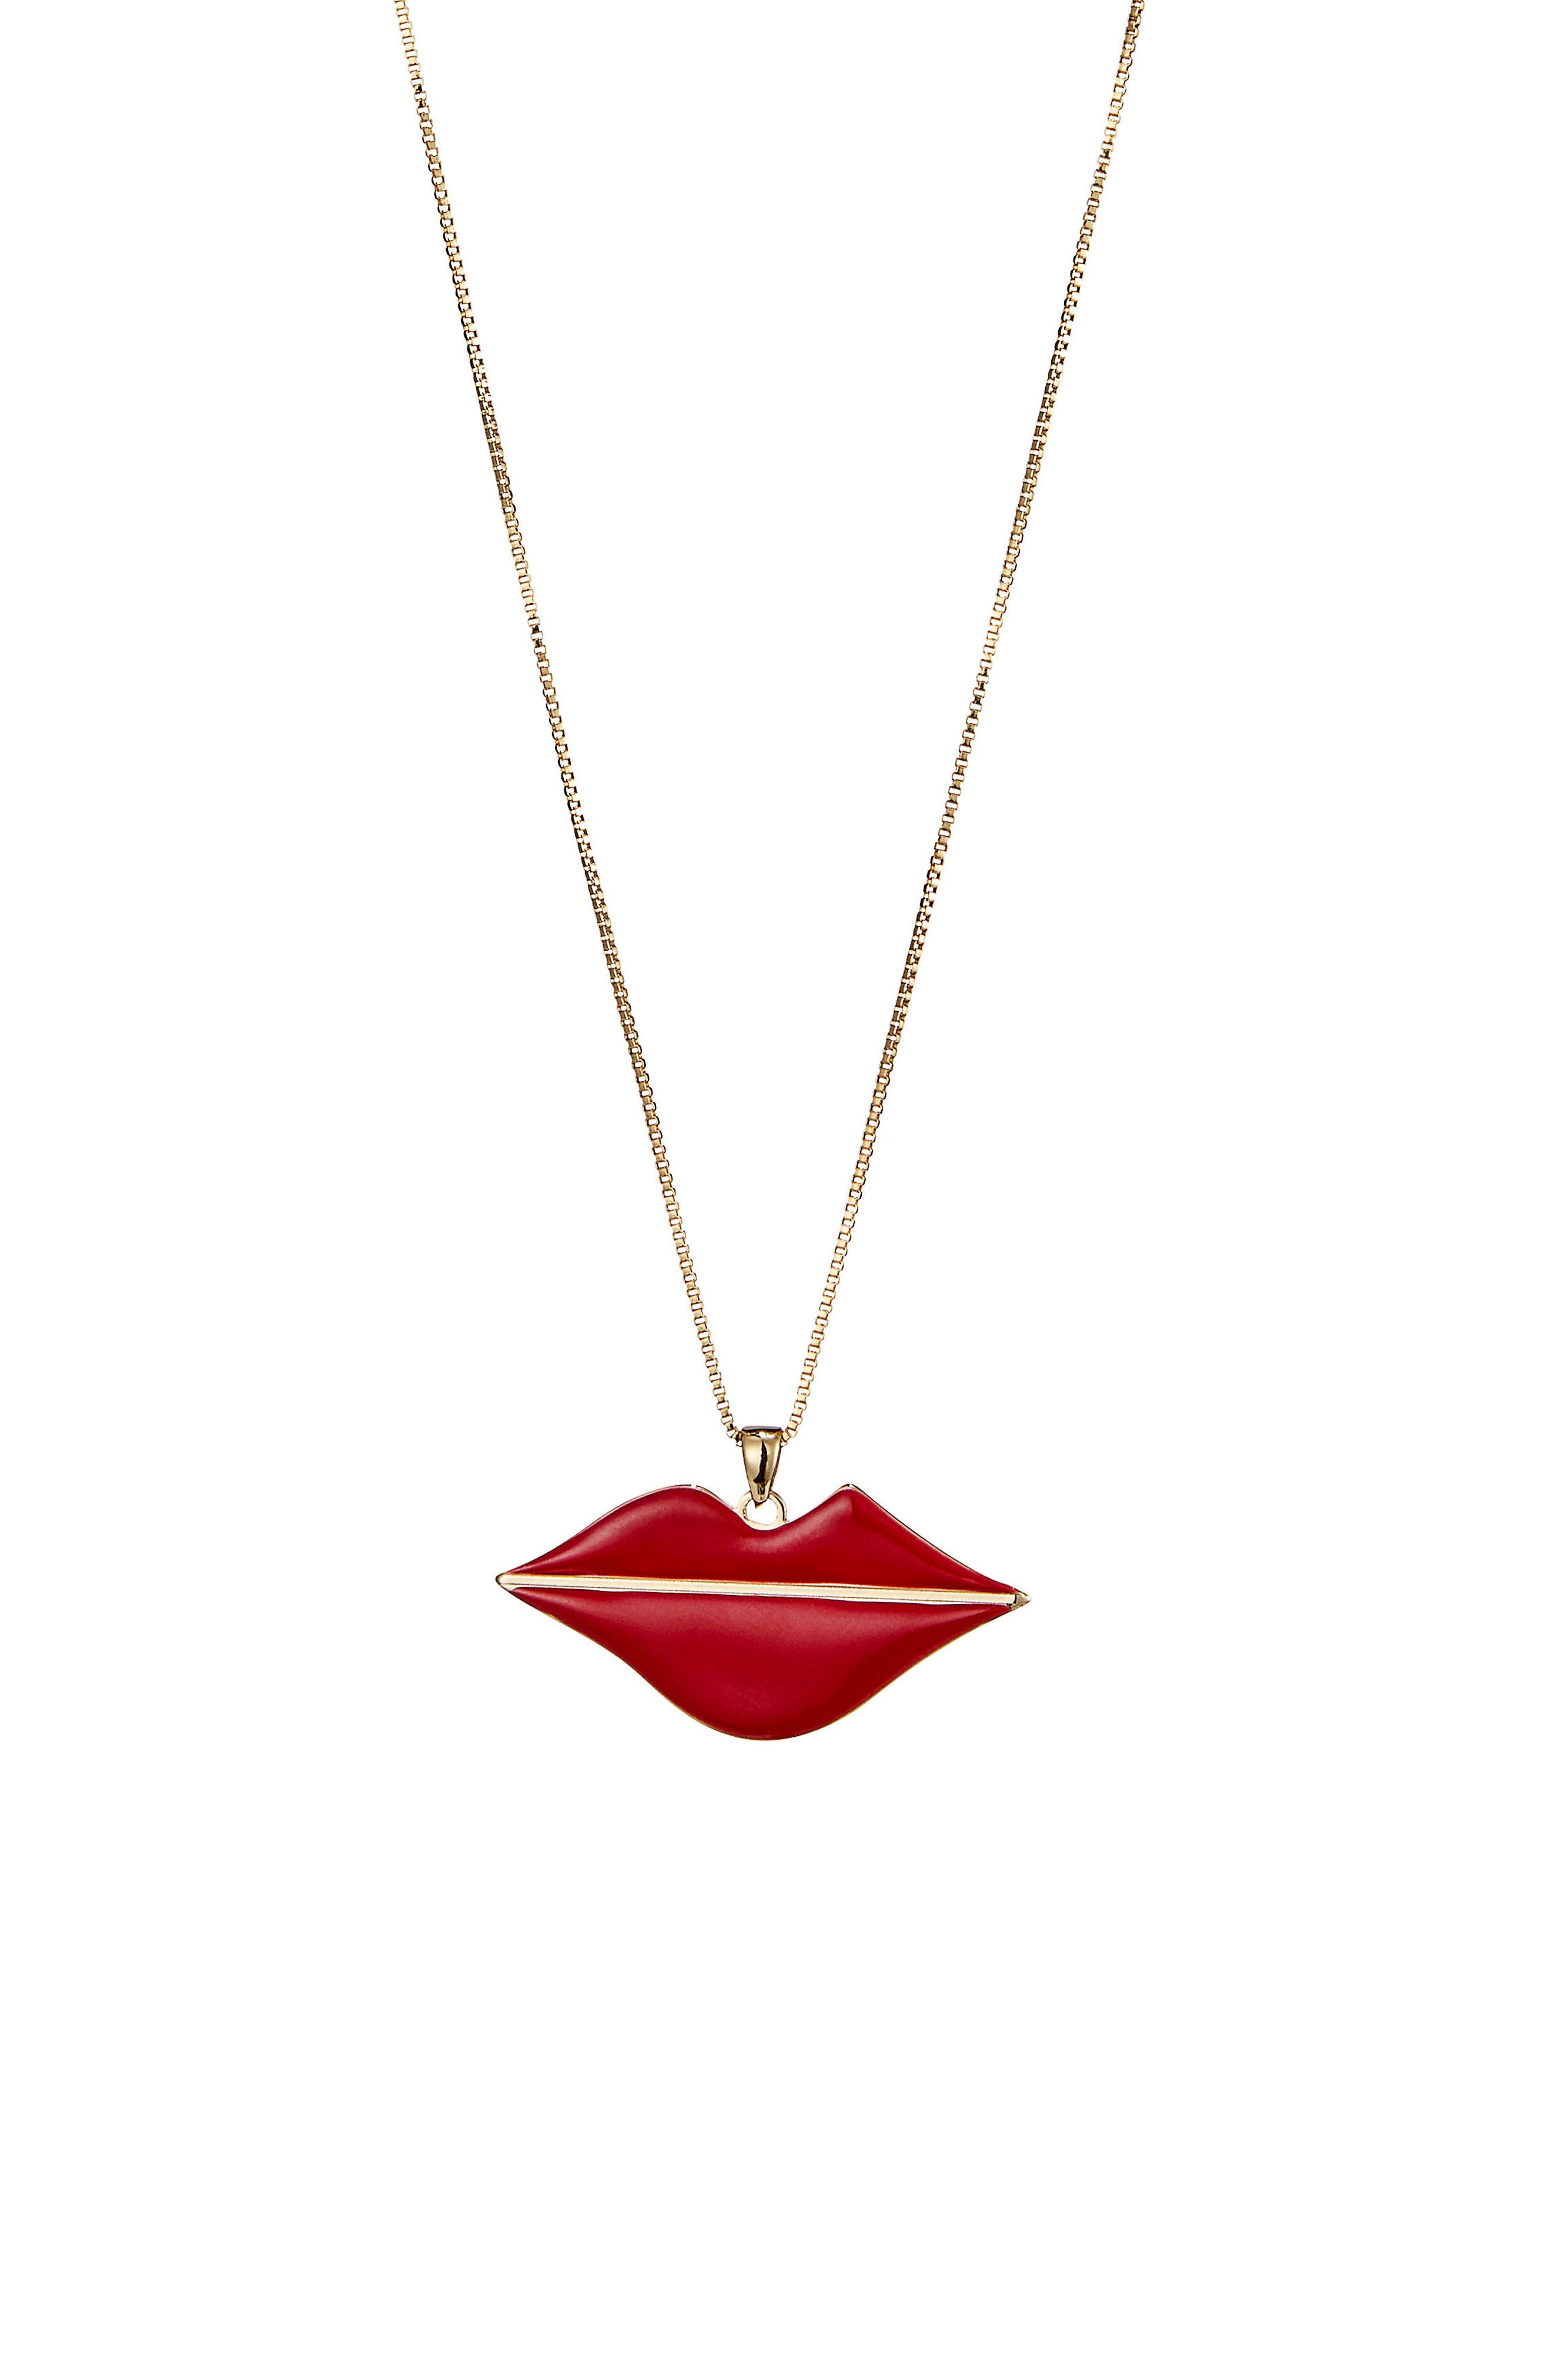 La Bouche Pendant Necklace,                             Main thumbnail 1, color,                             600